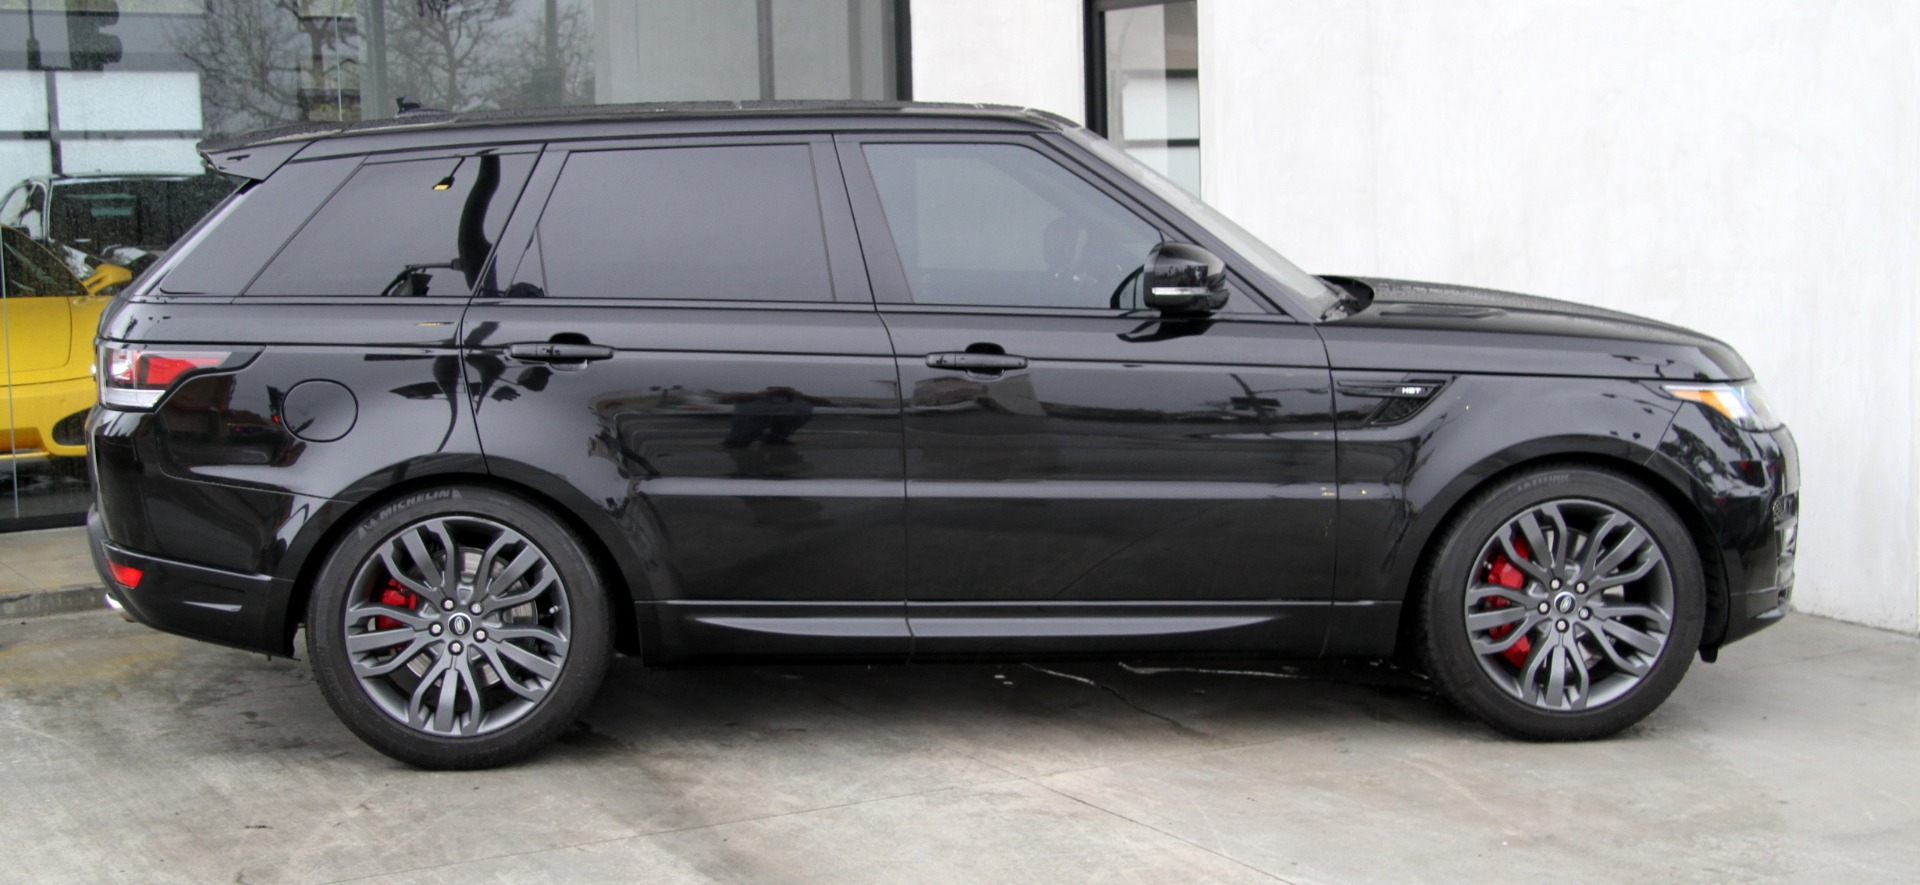 Used Range Rover For Sale Near Me >> 2016 Land Rover Range Rover Sport ** HST LIMITED EDITION ...